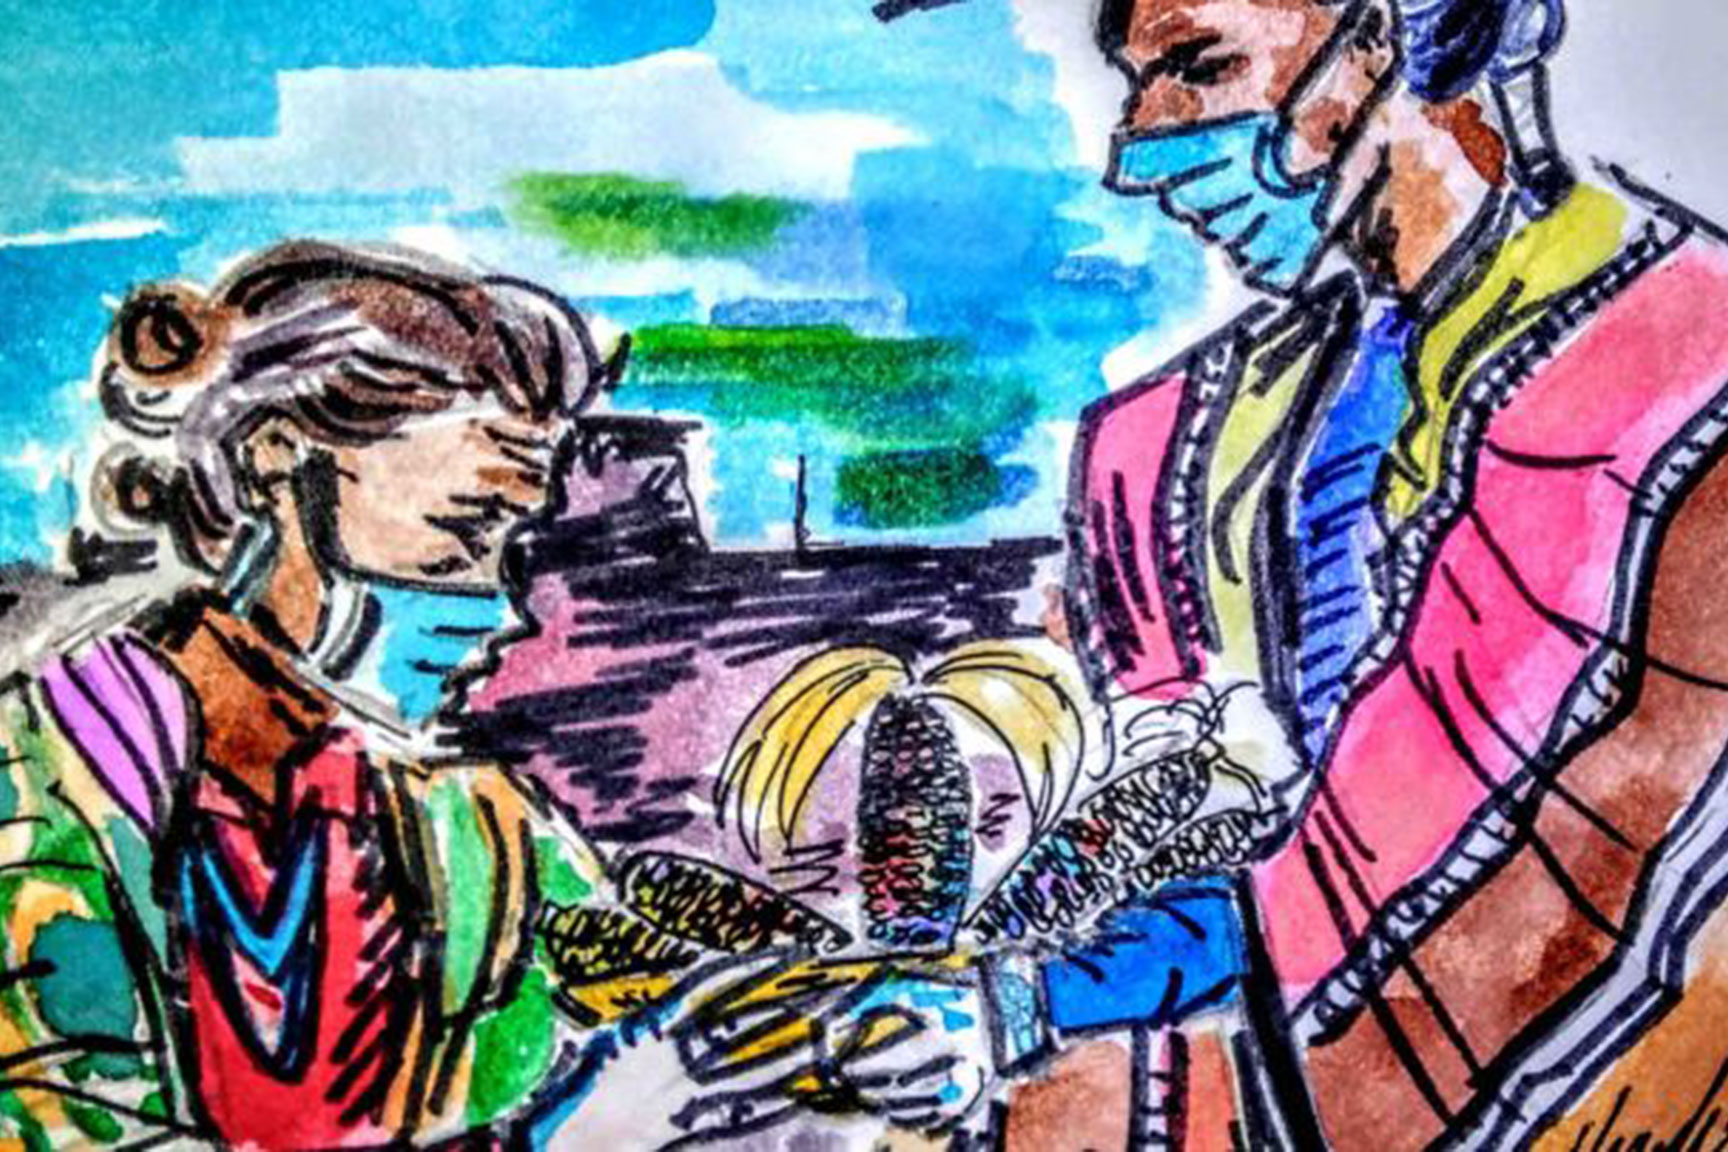 illustration of native american man and woman wearing face masks and offering gifts of charity